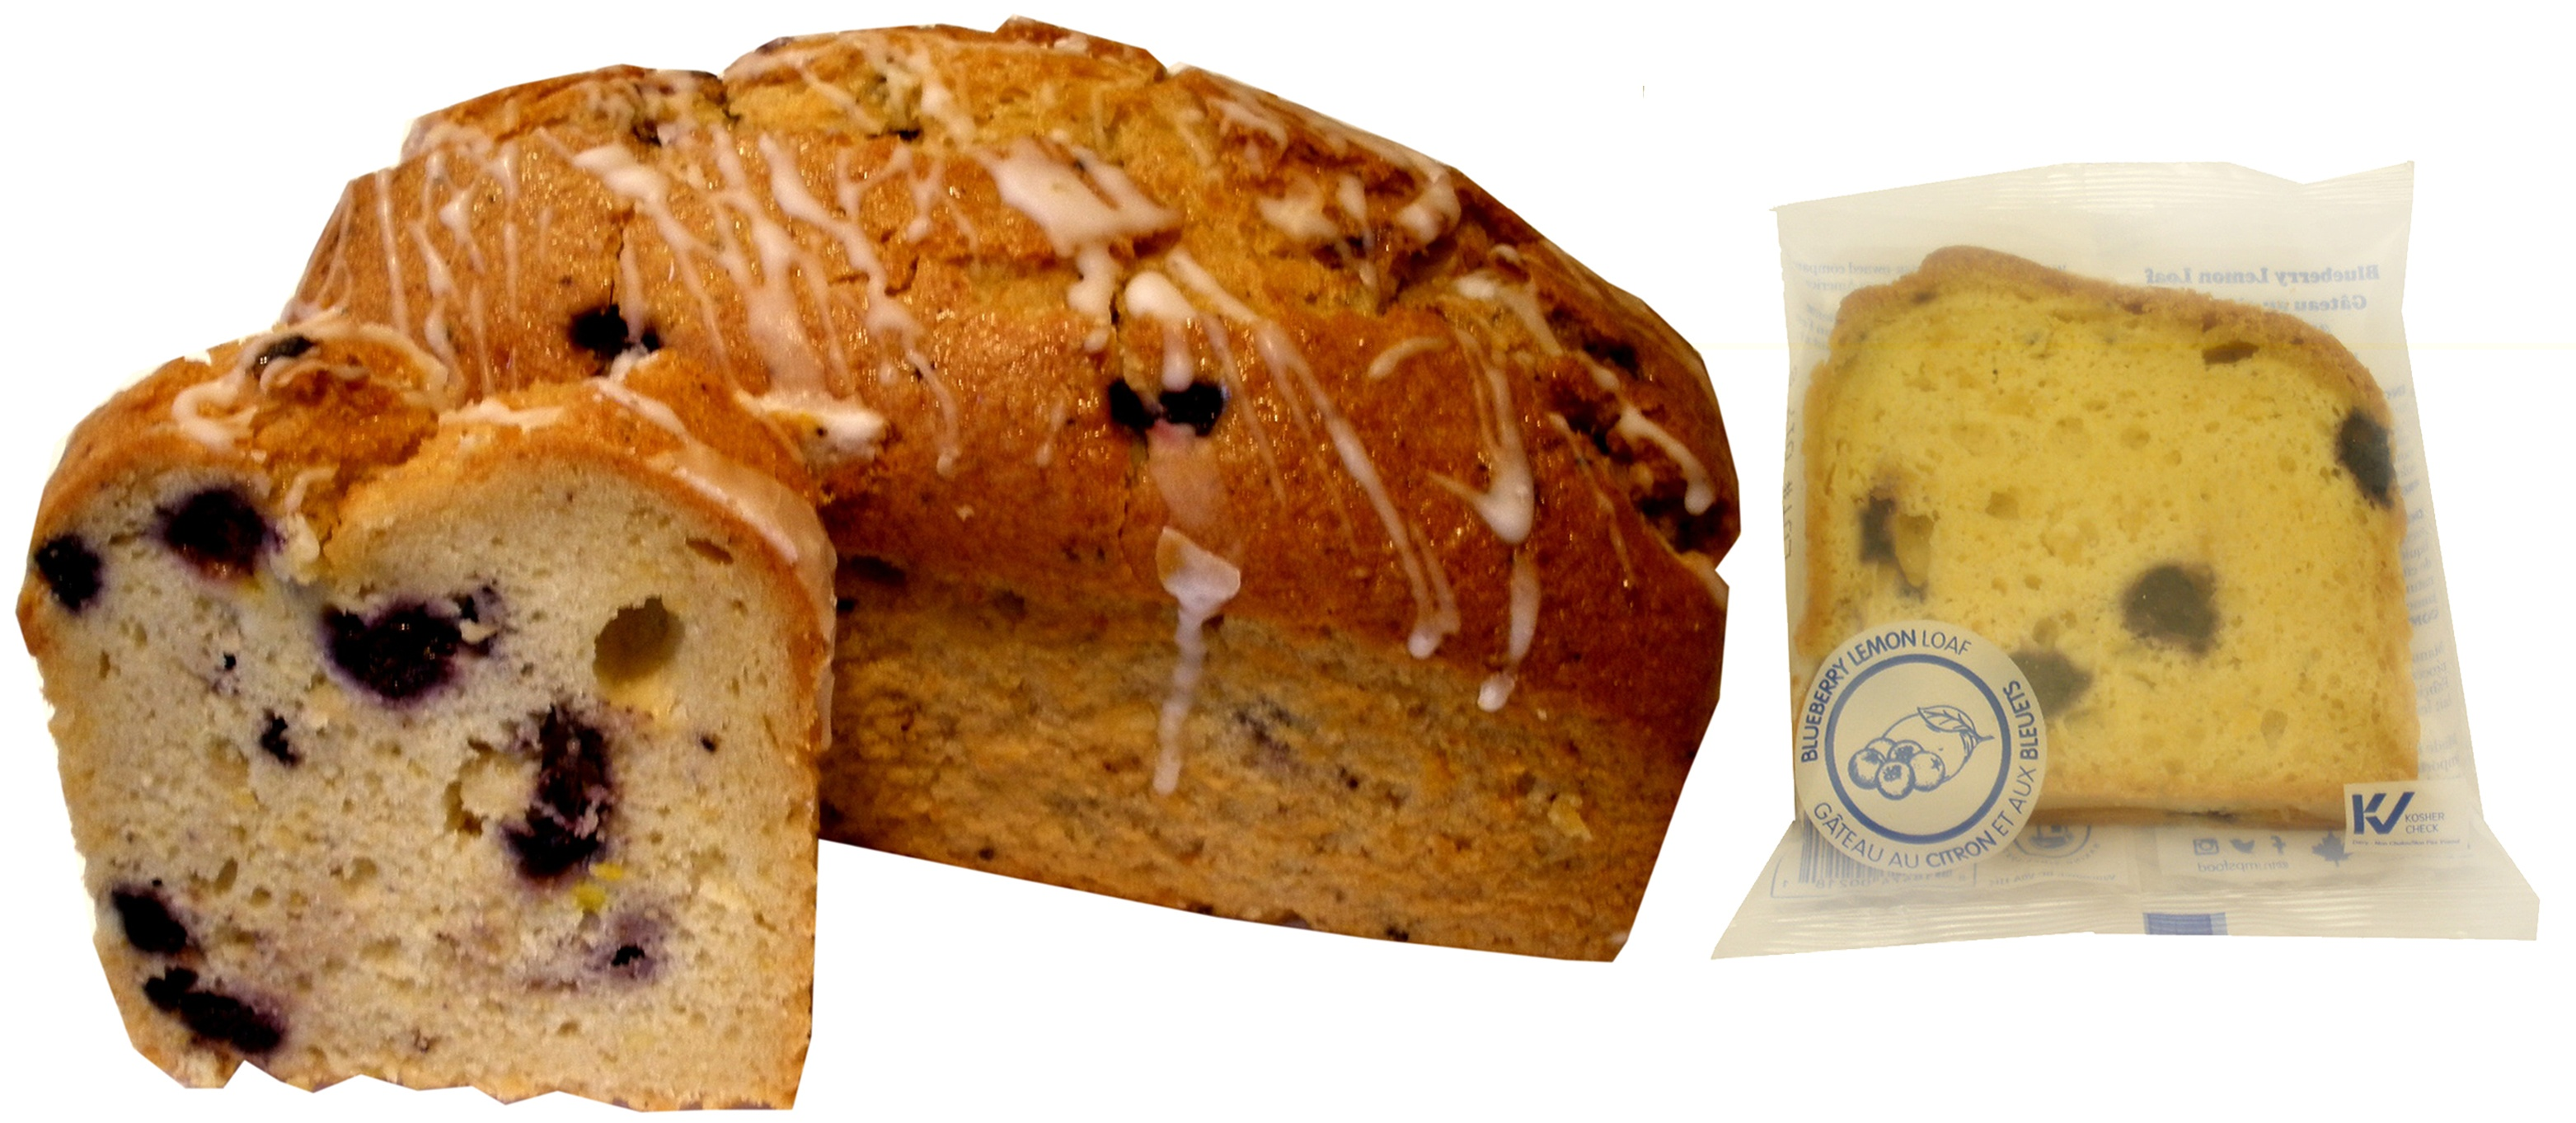 https://0901.nccdn.net/4_2/000/000/017/e75/Lemon-Blueberry-Loaf---FW-Website-picture-3125x1362.jpg